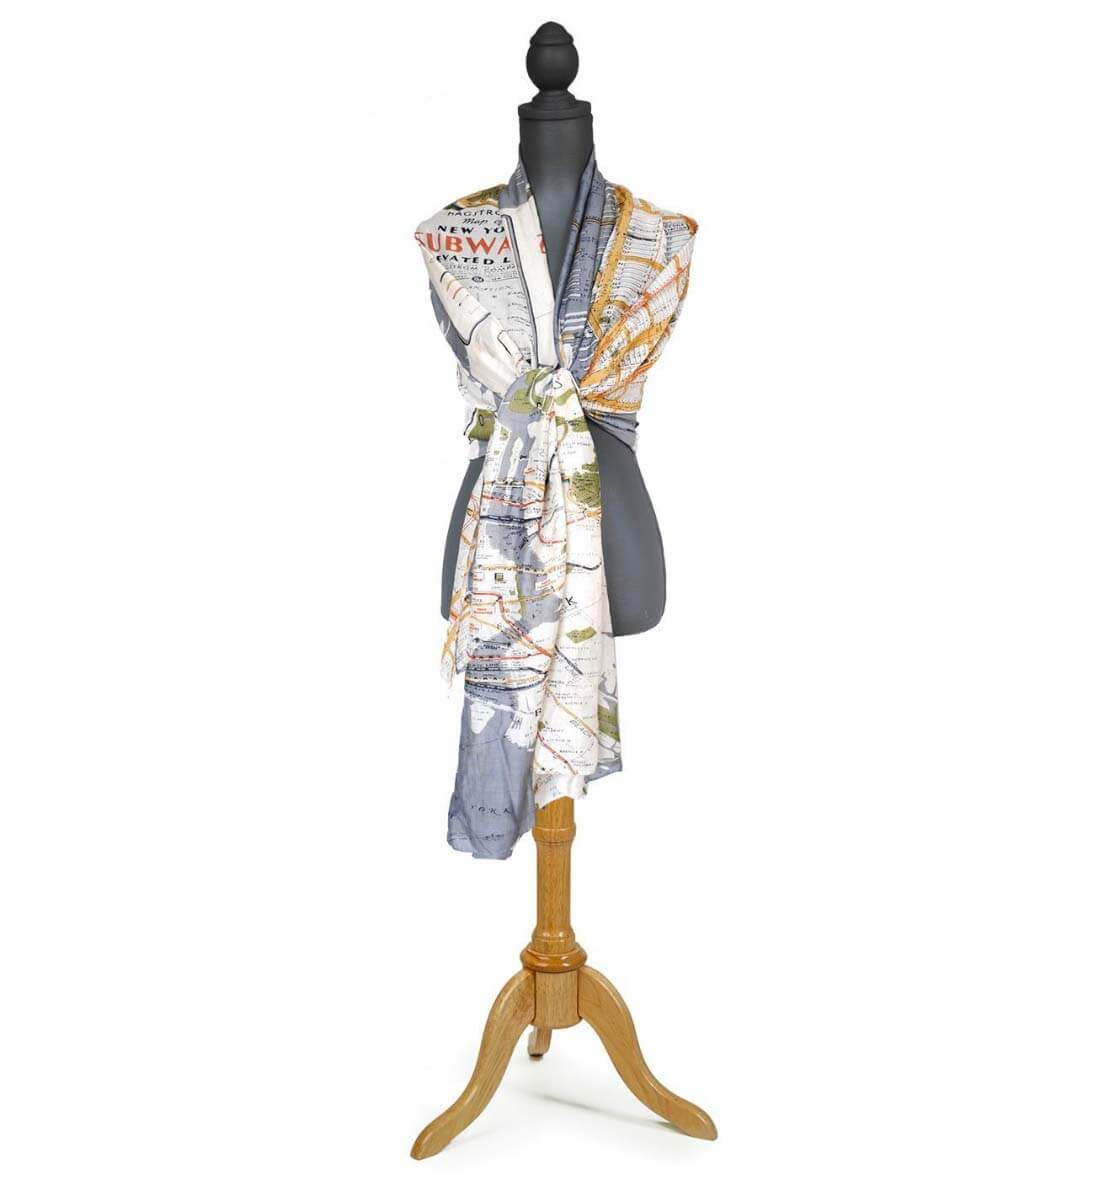 light fashion scarf patterned with an old, retro map of New York City